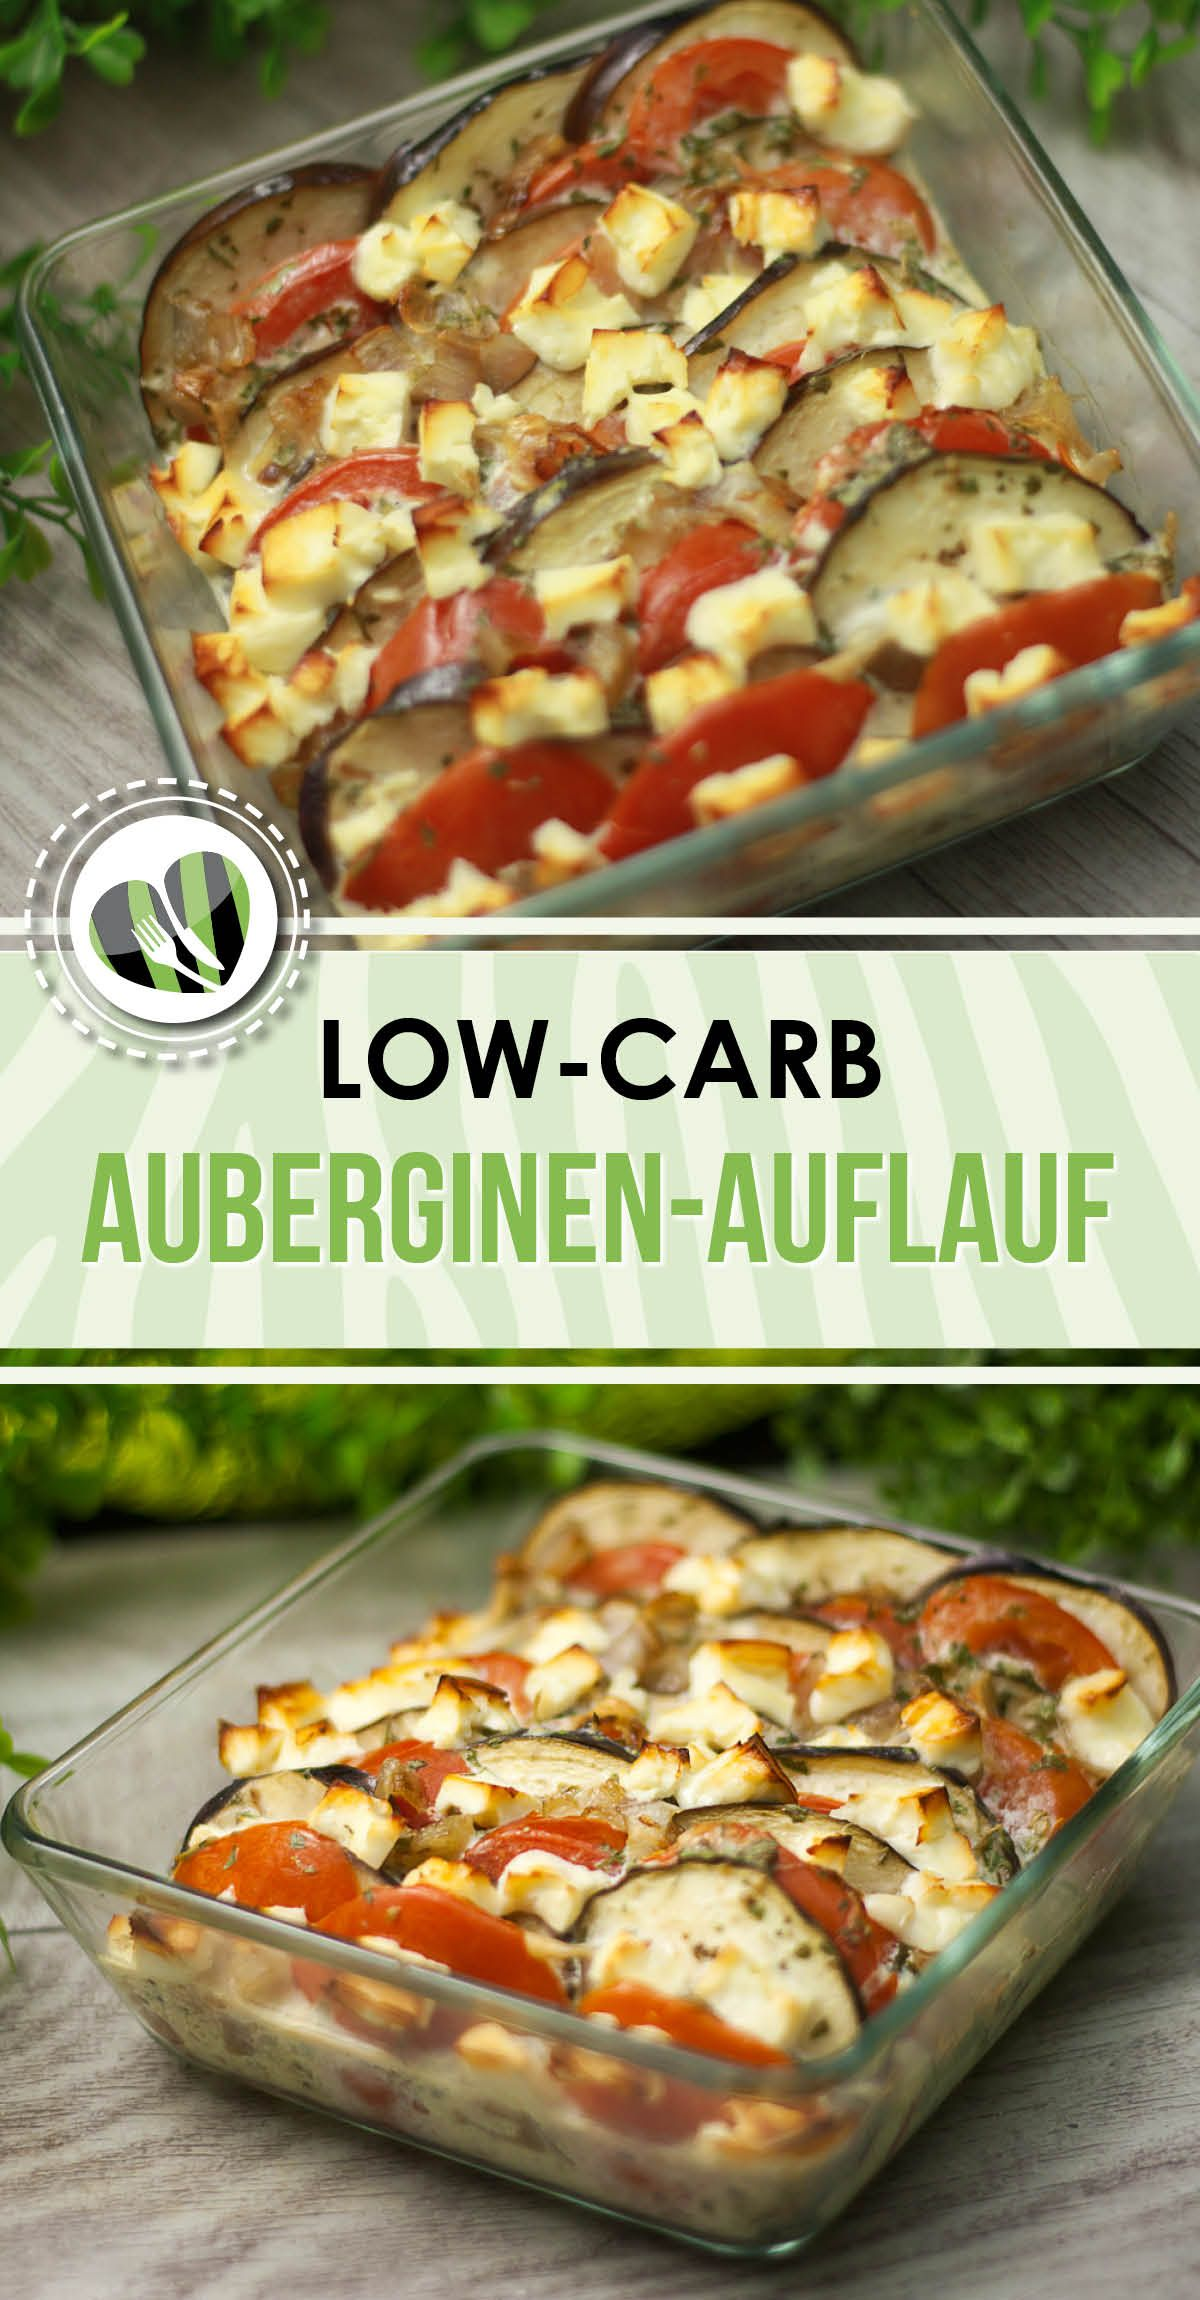 Photo of Eggplant casserole, vegetarian, low carb and without carbohydrates